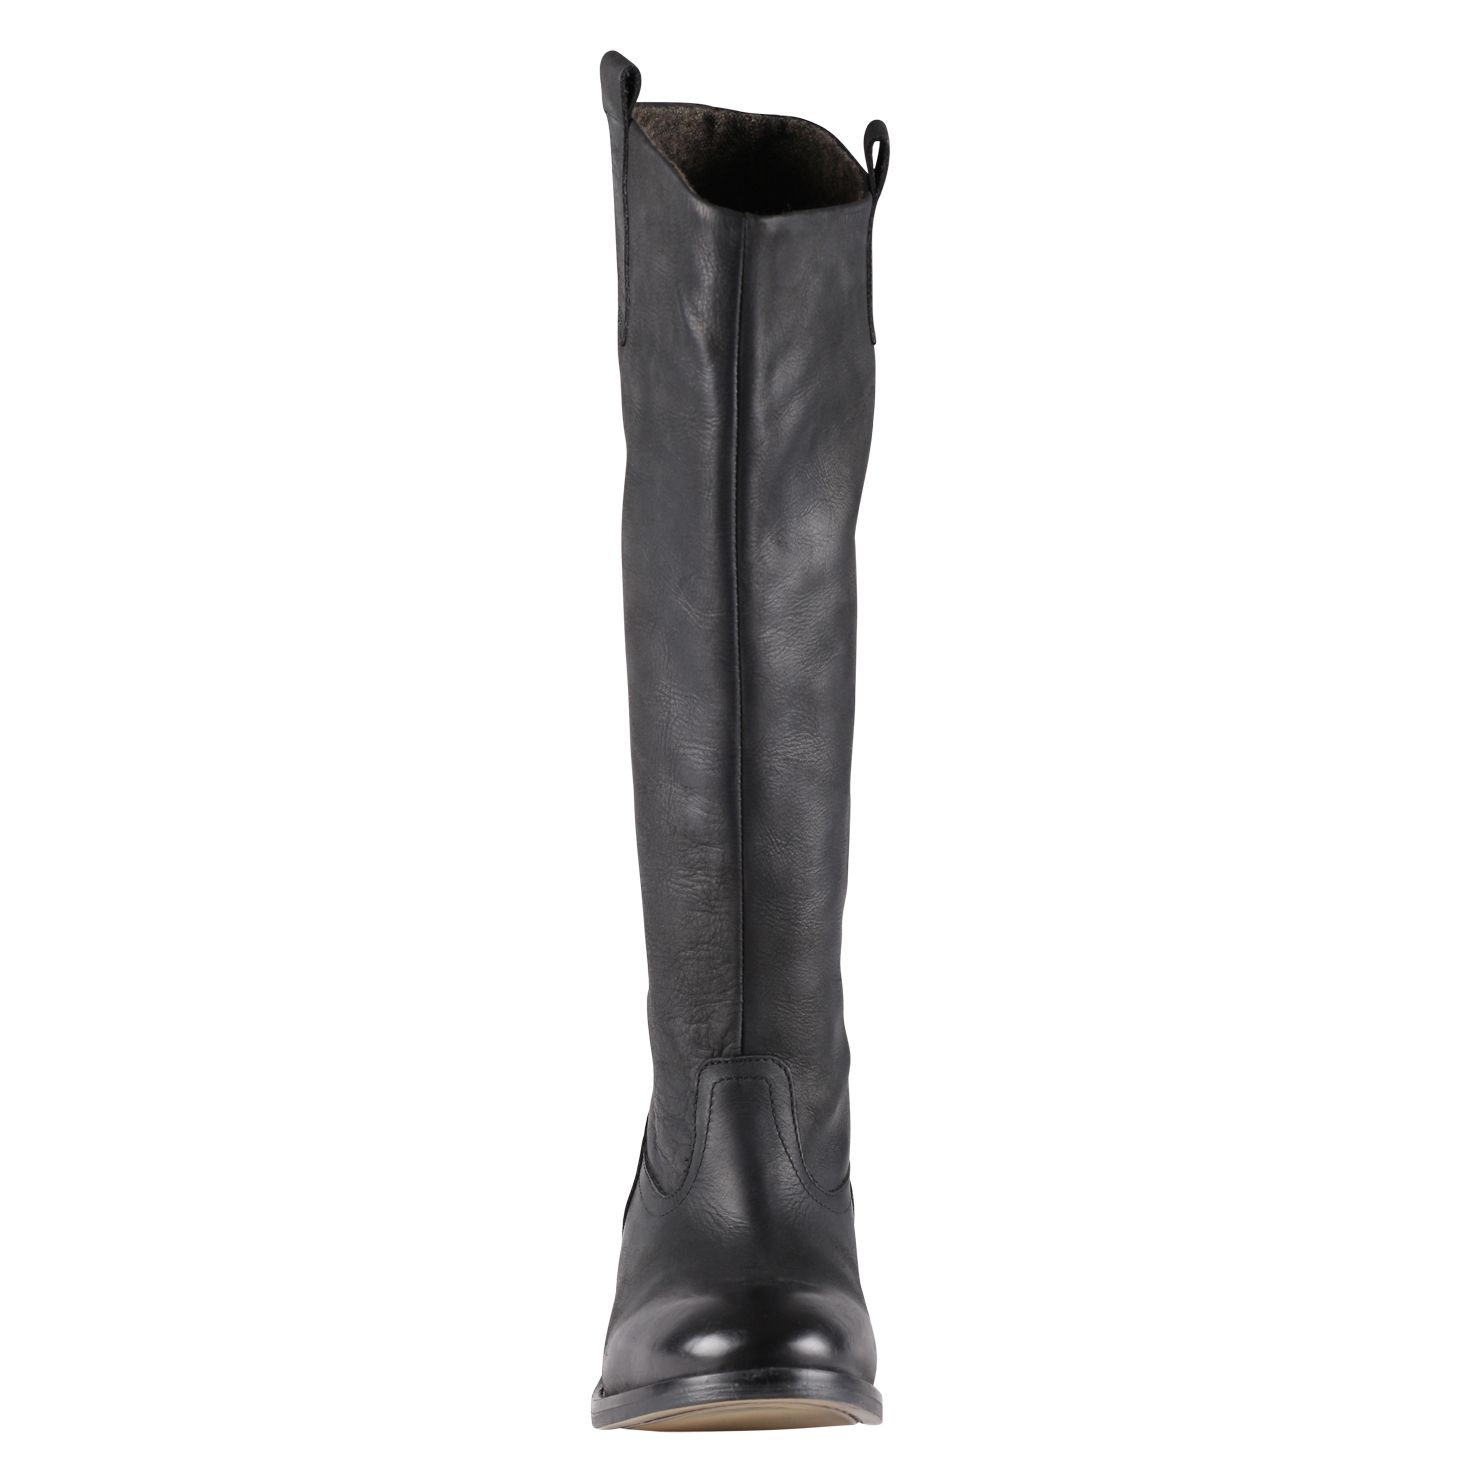 Shavonda Knee High Boots